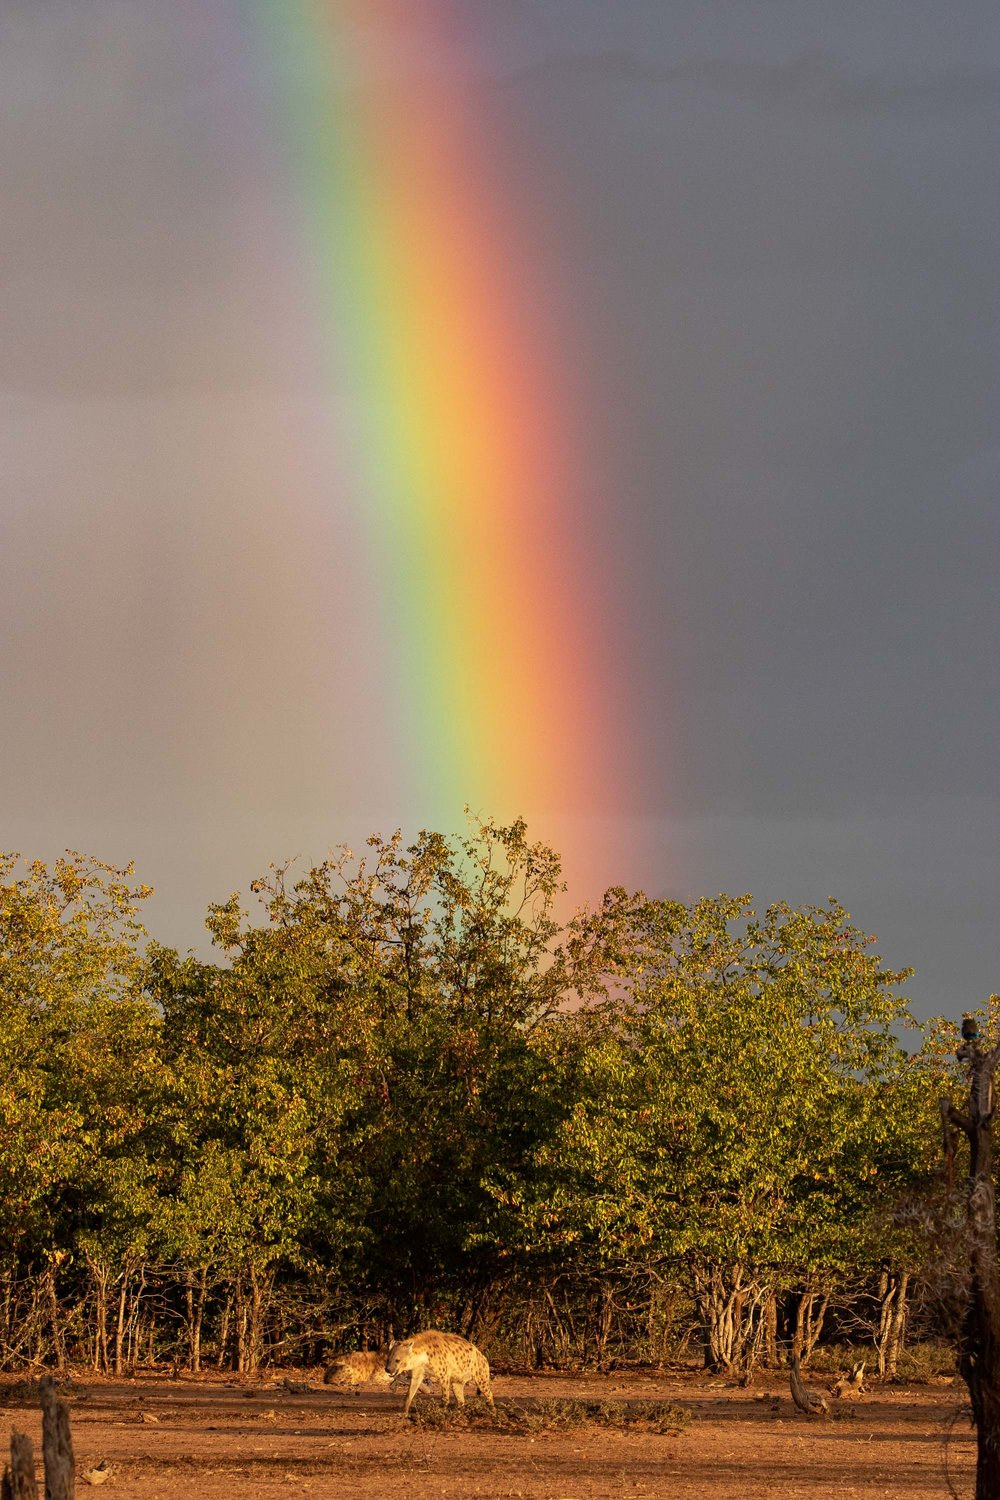 One of many unforgettable moments from the trip: Spotted Hyena pot o' gold at the end of a glorious rainbow,.